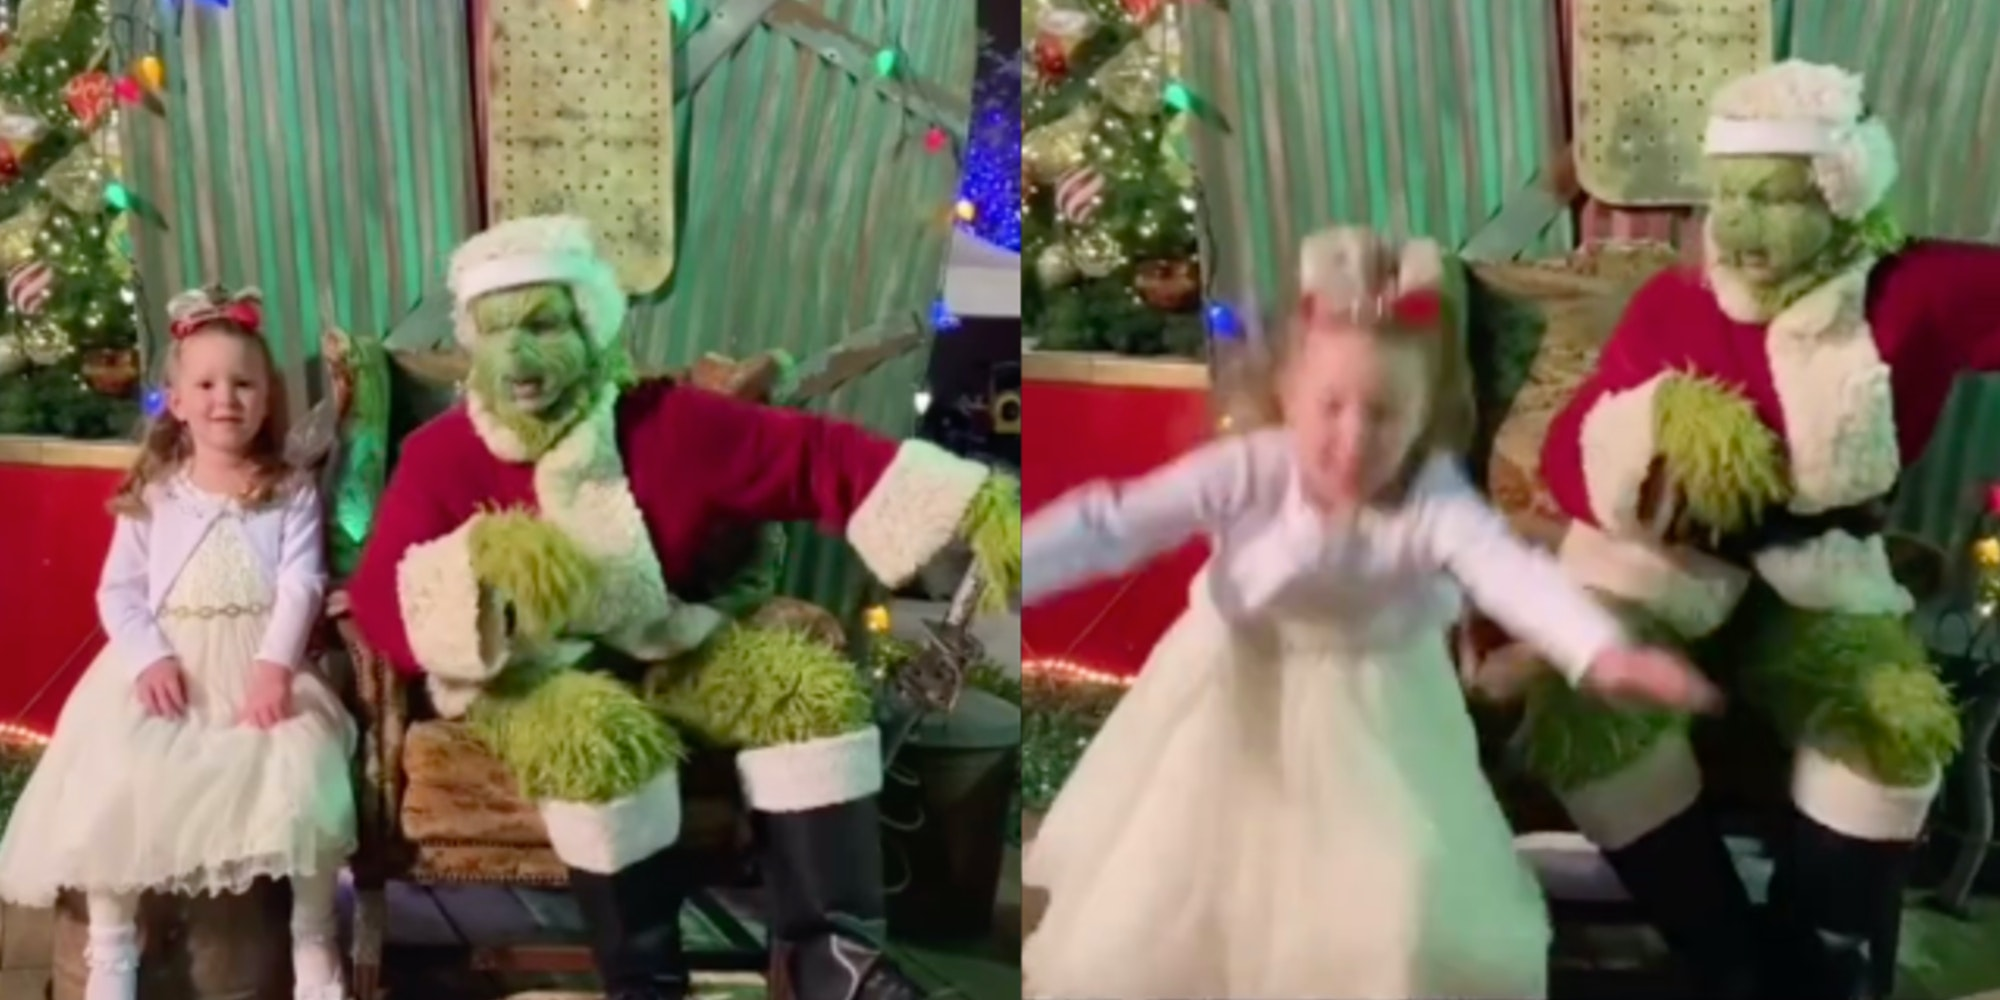 grinch prank tiktok video